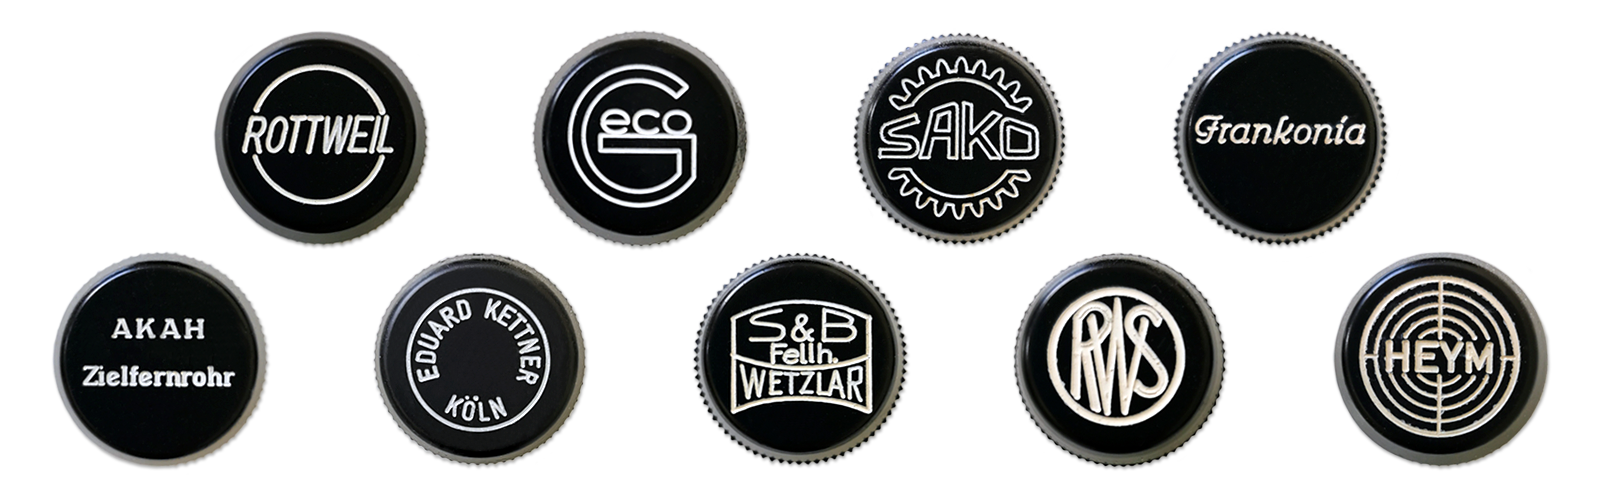 Some examples of the OEM products like Geco, Sako, Frankonia, Rottweil, Kettner, RWS, Heym und Akah